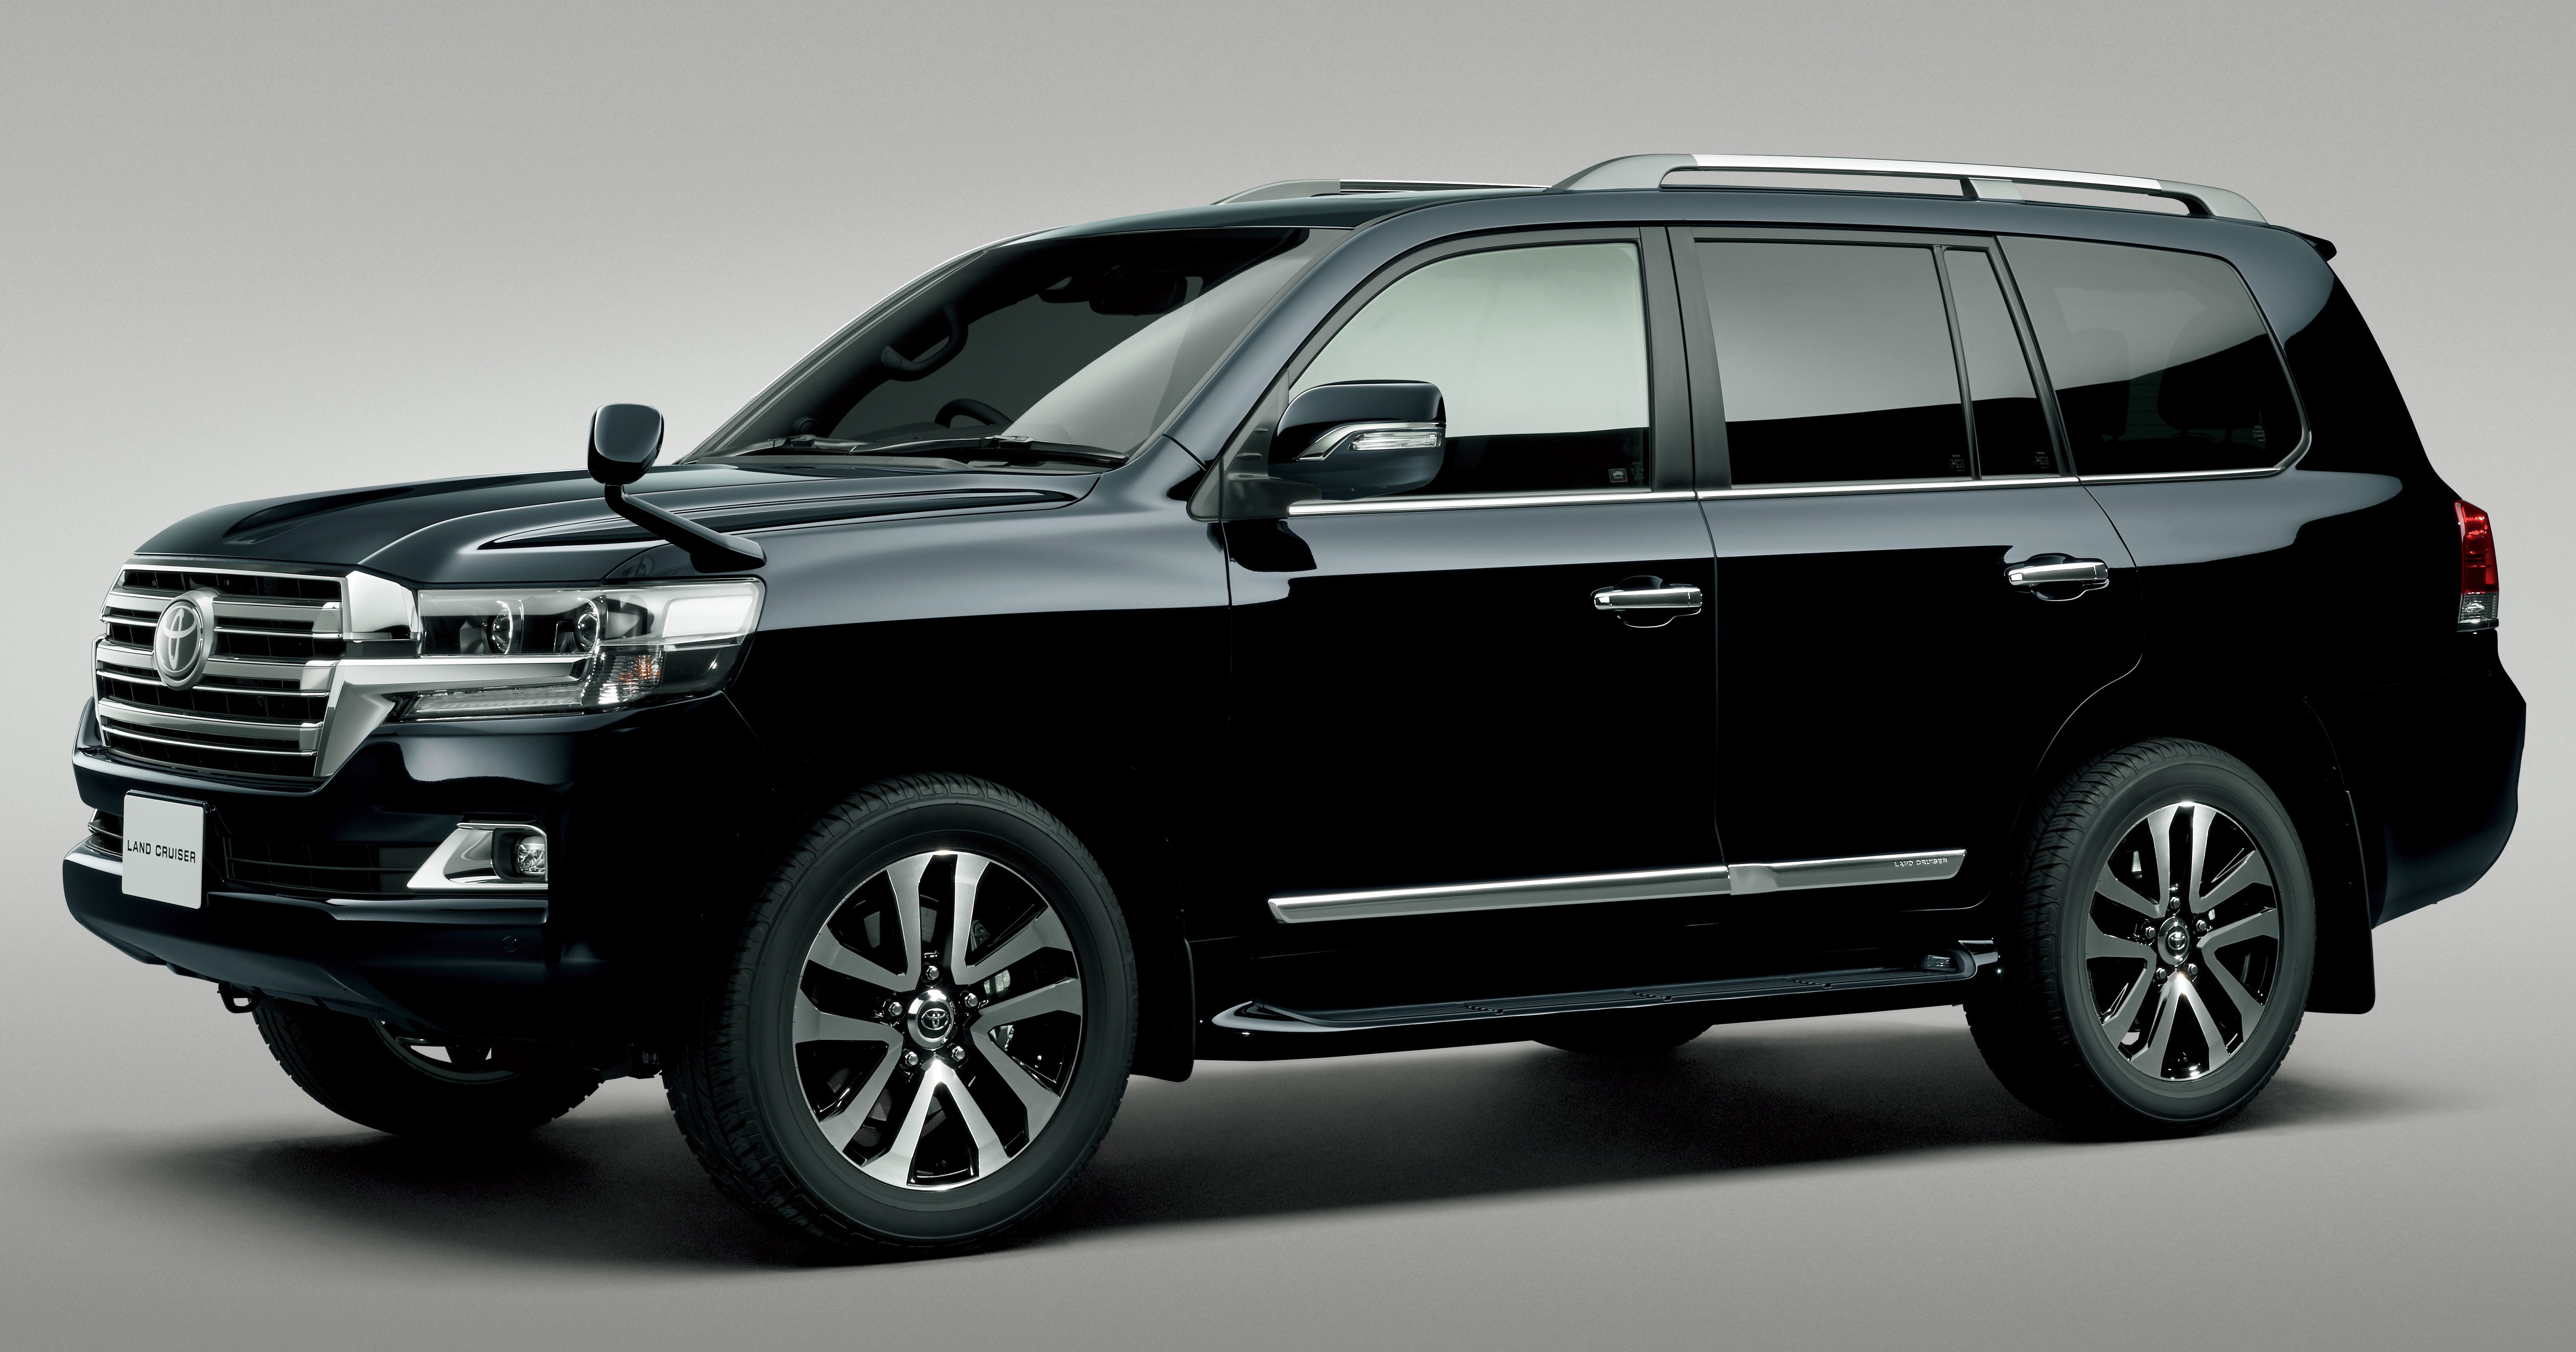 Toyota Crown Land Cruiser Editions Launched To